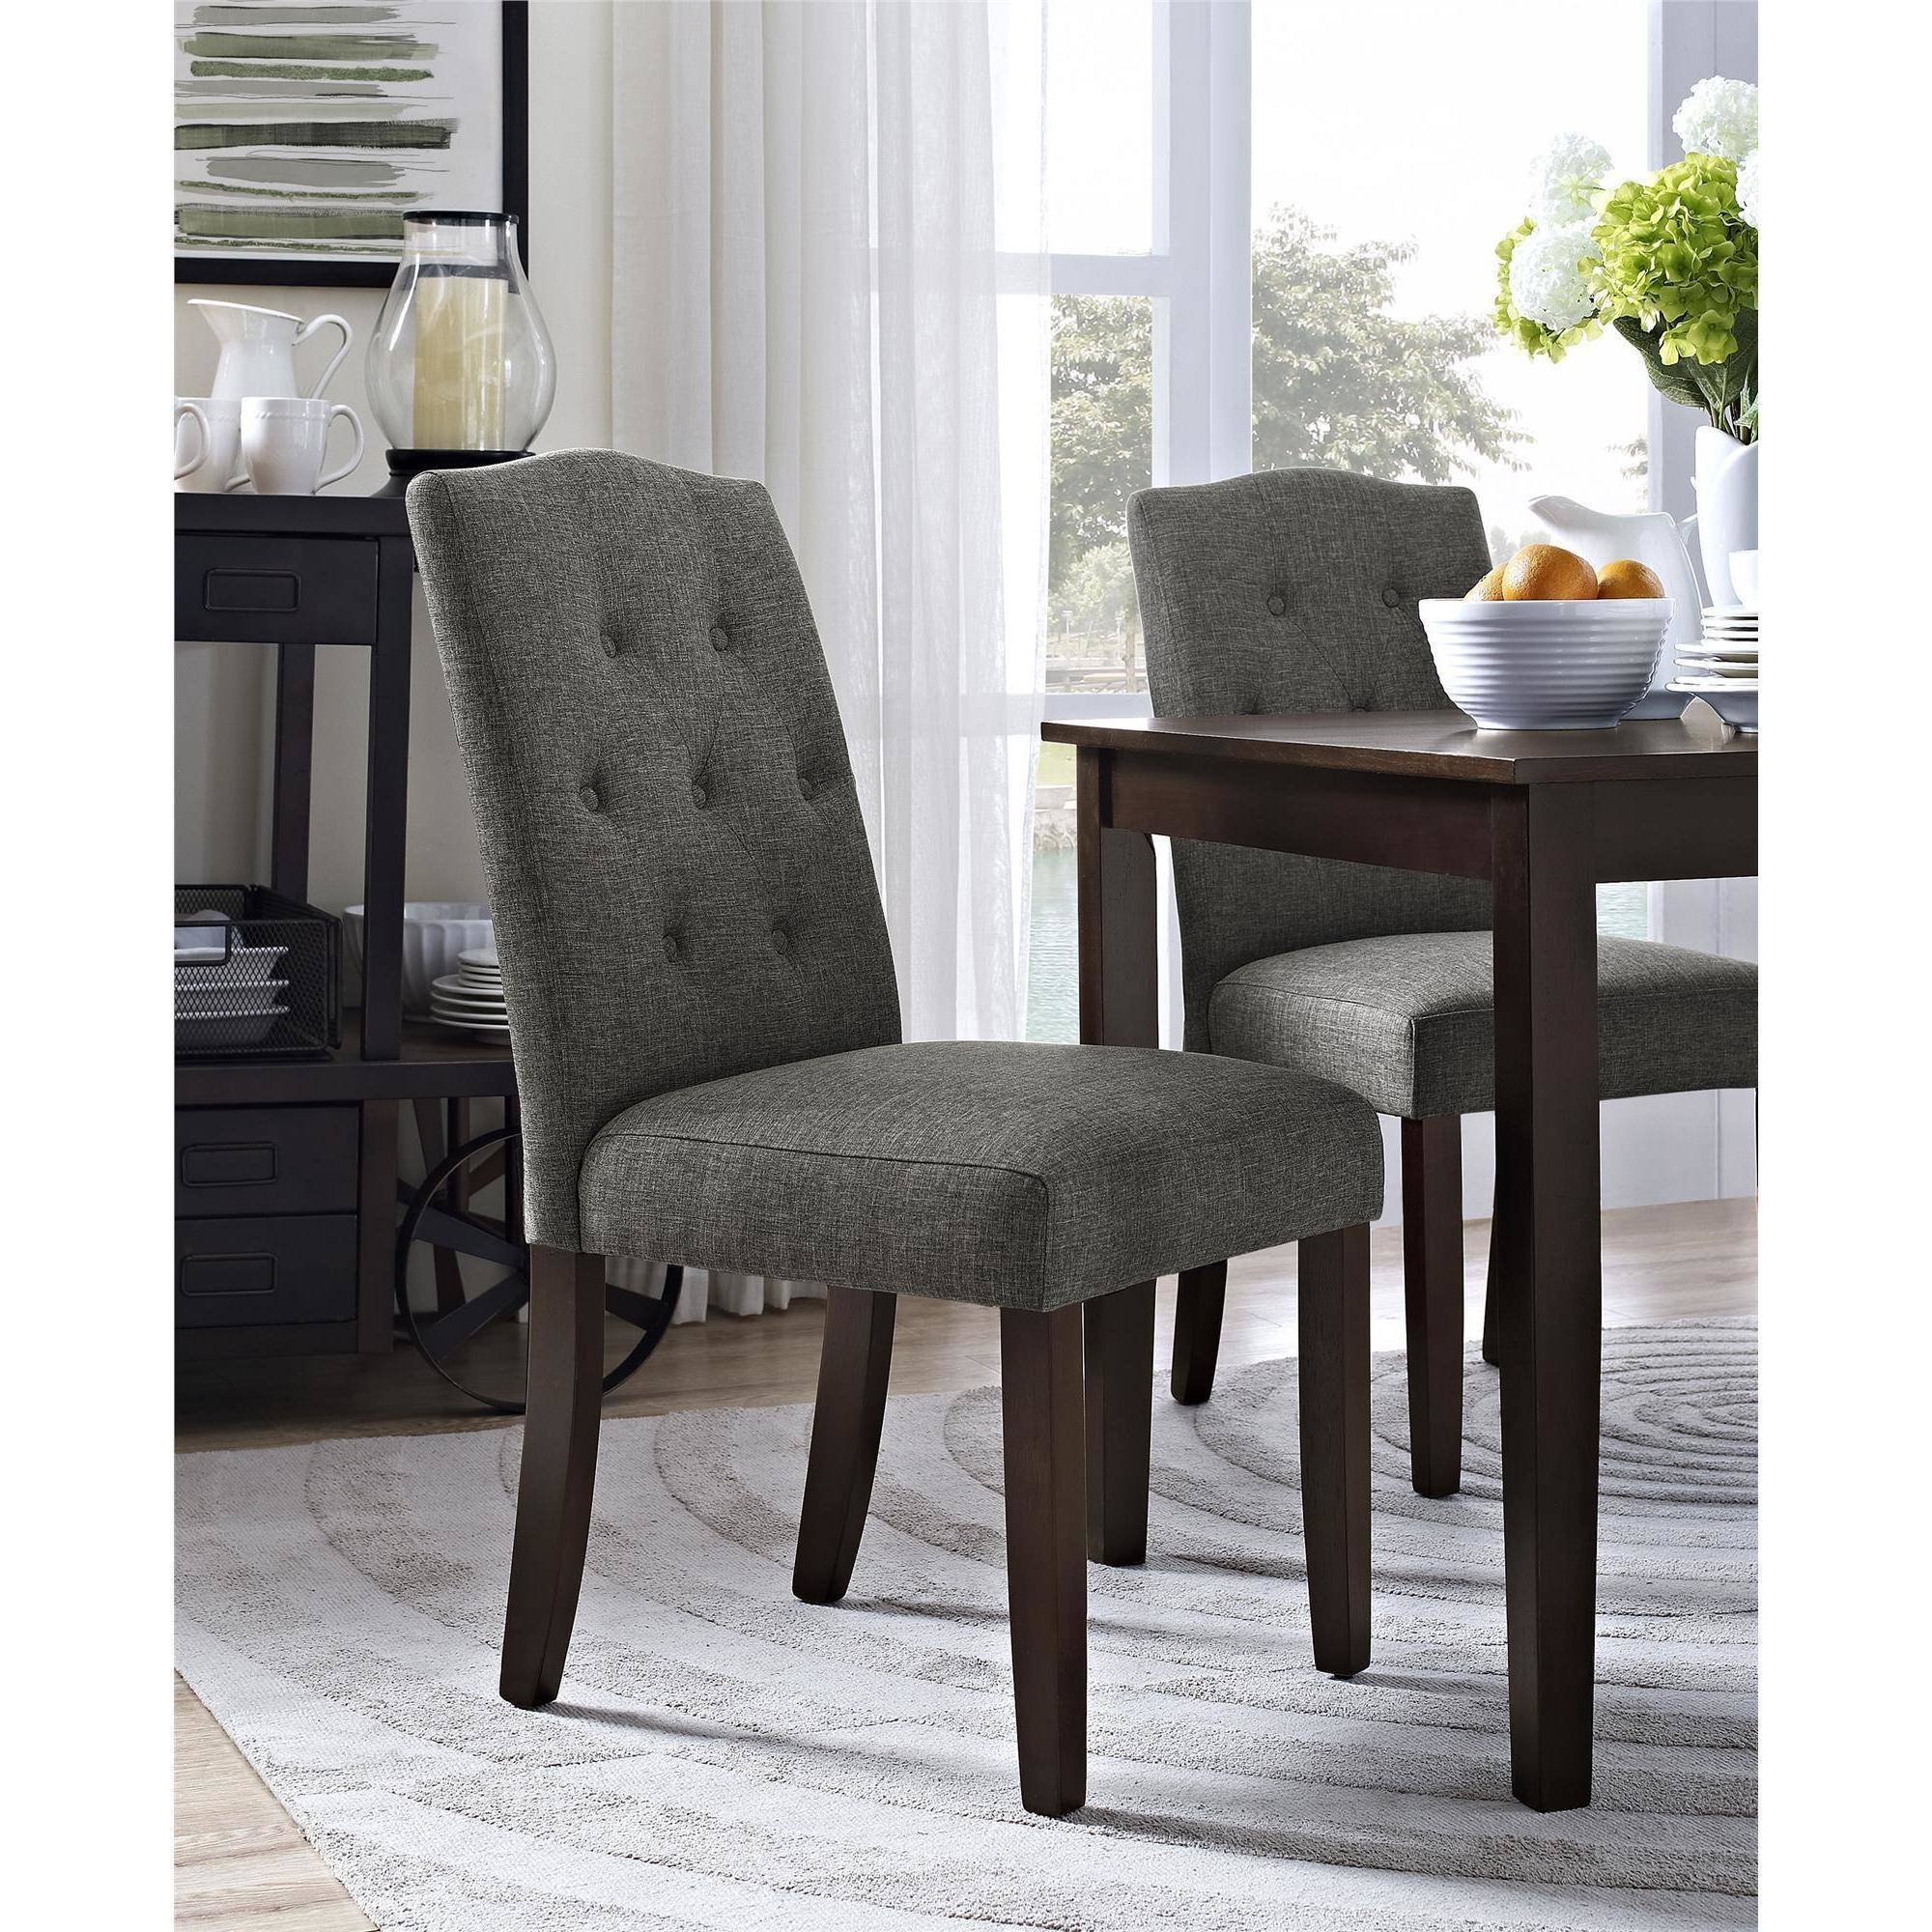 Better homes and gardens parsons tufted dining chair multiple colors walmart com